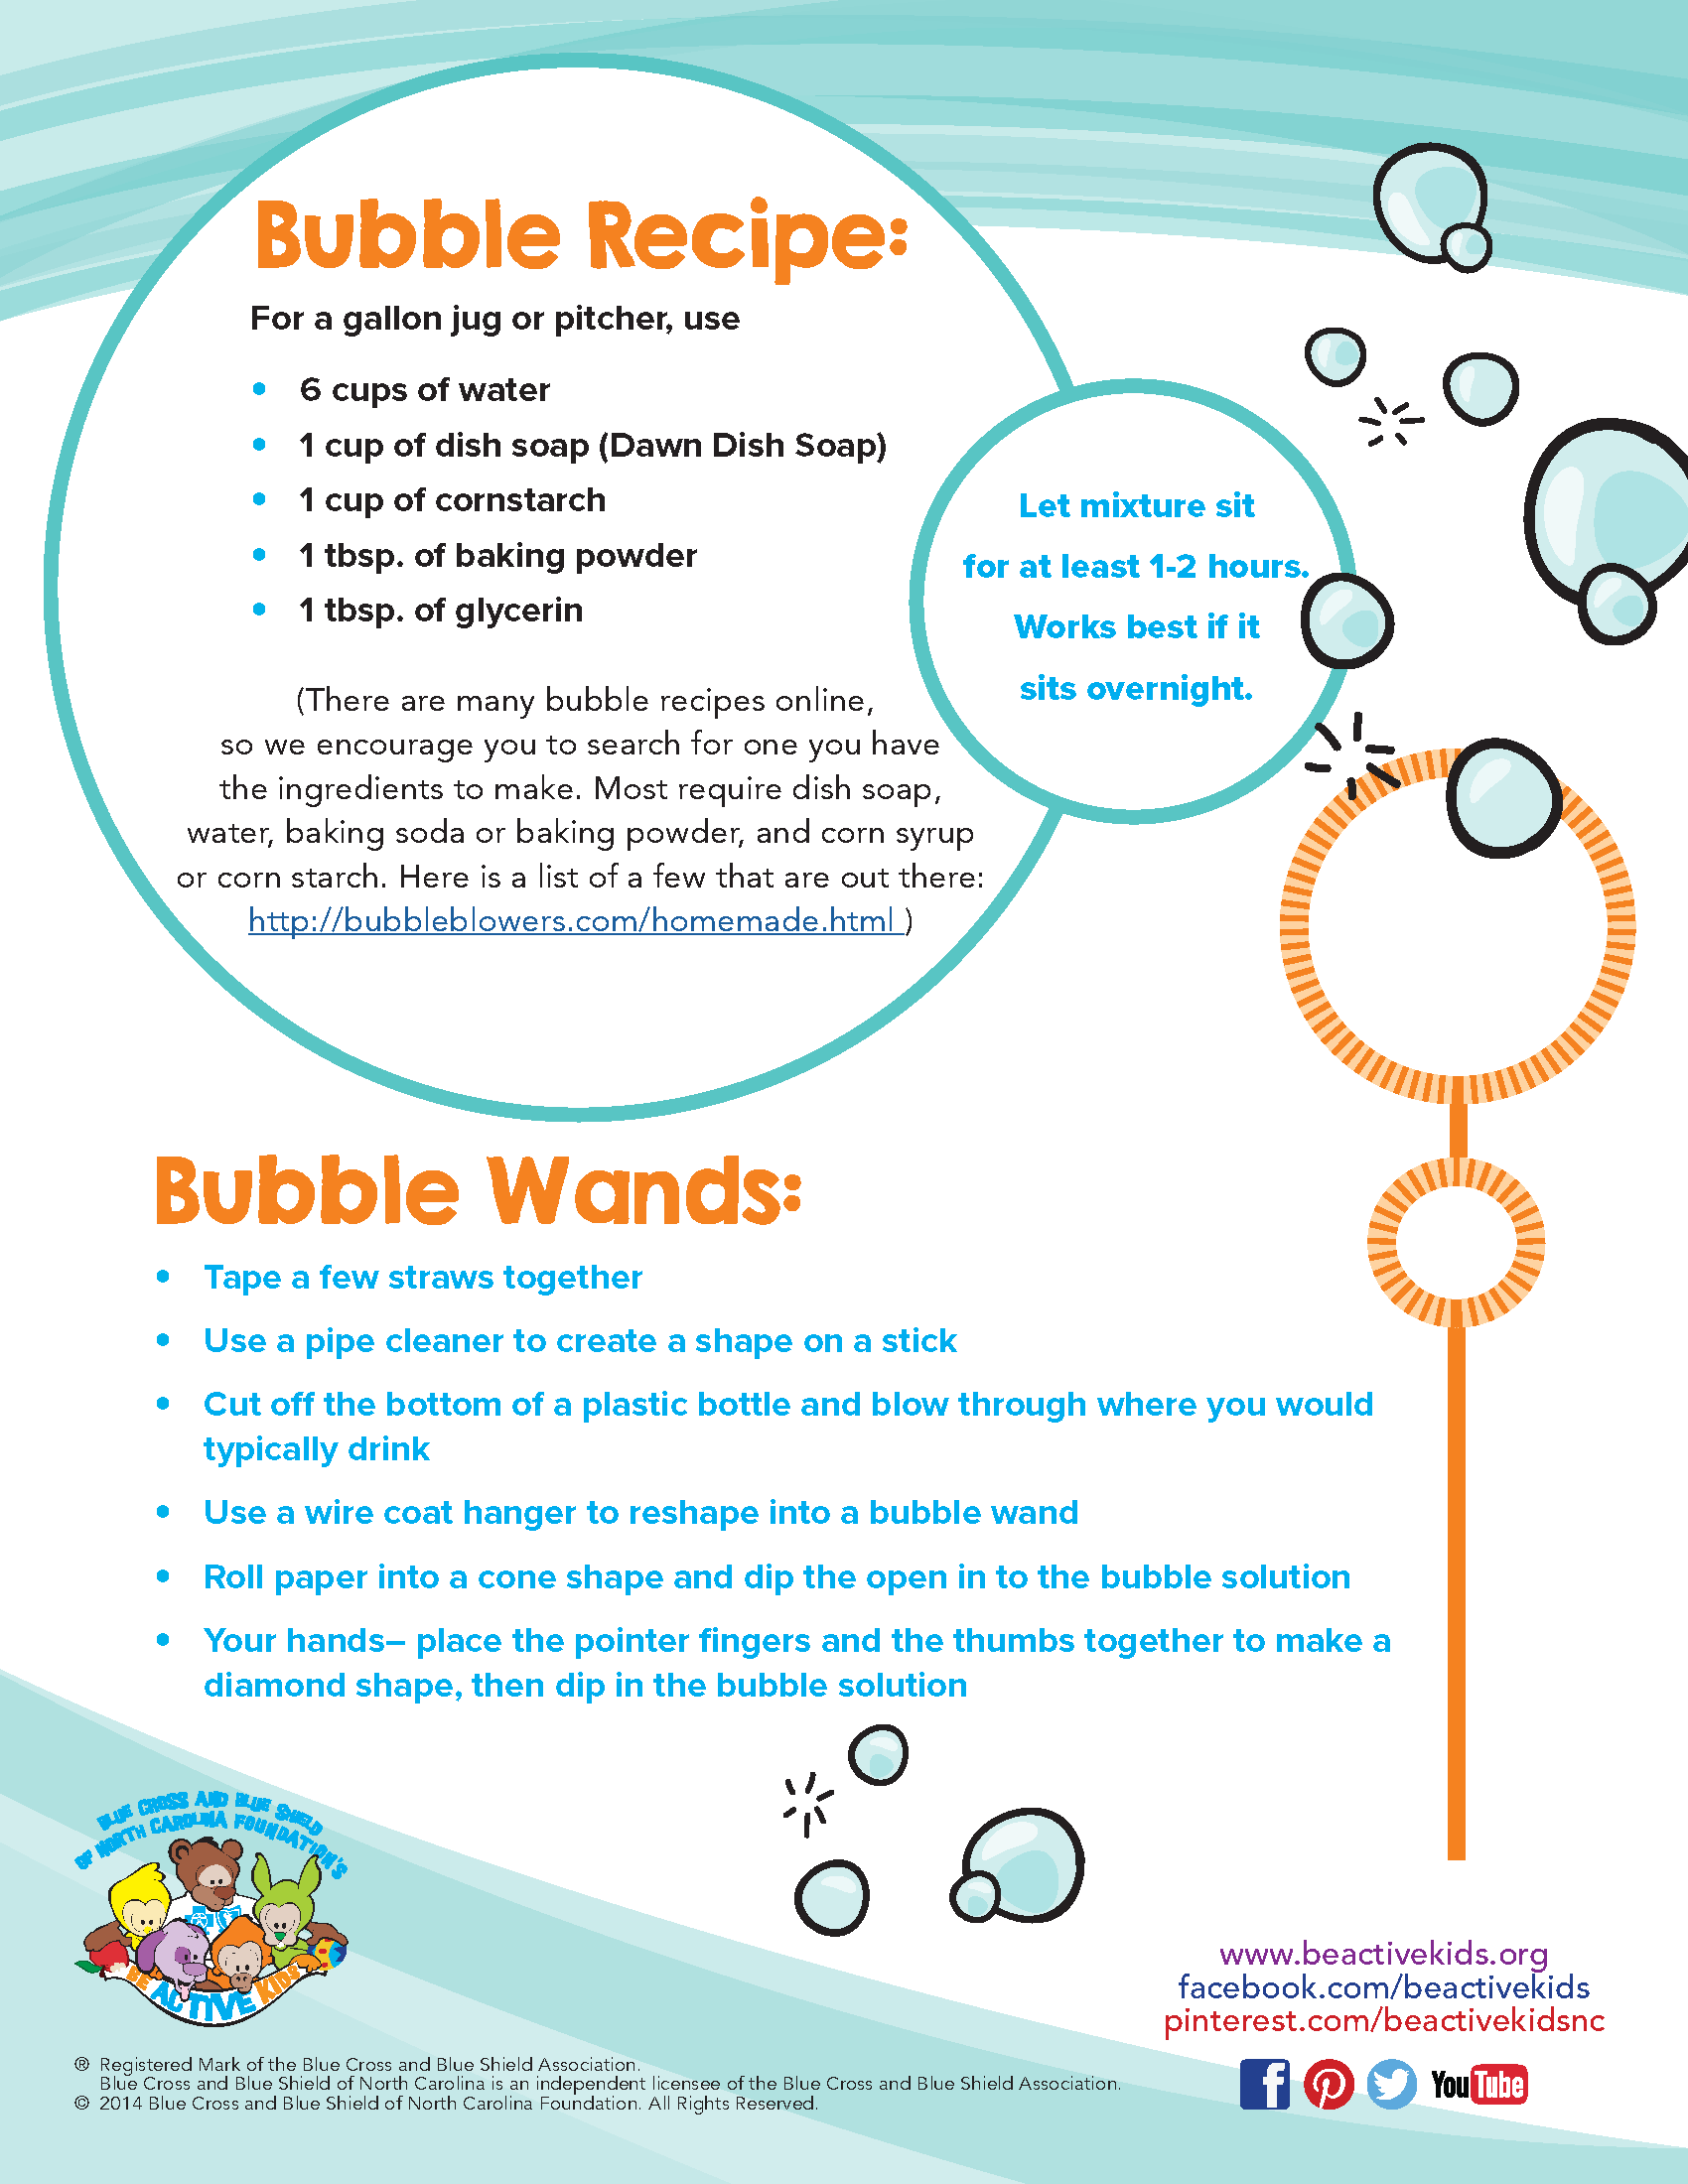 How to Make Bubbles and Bubble Wands